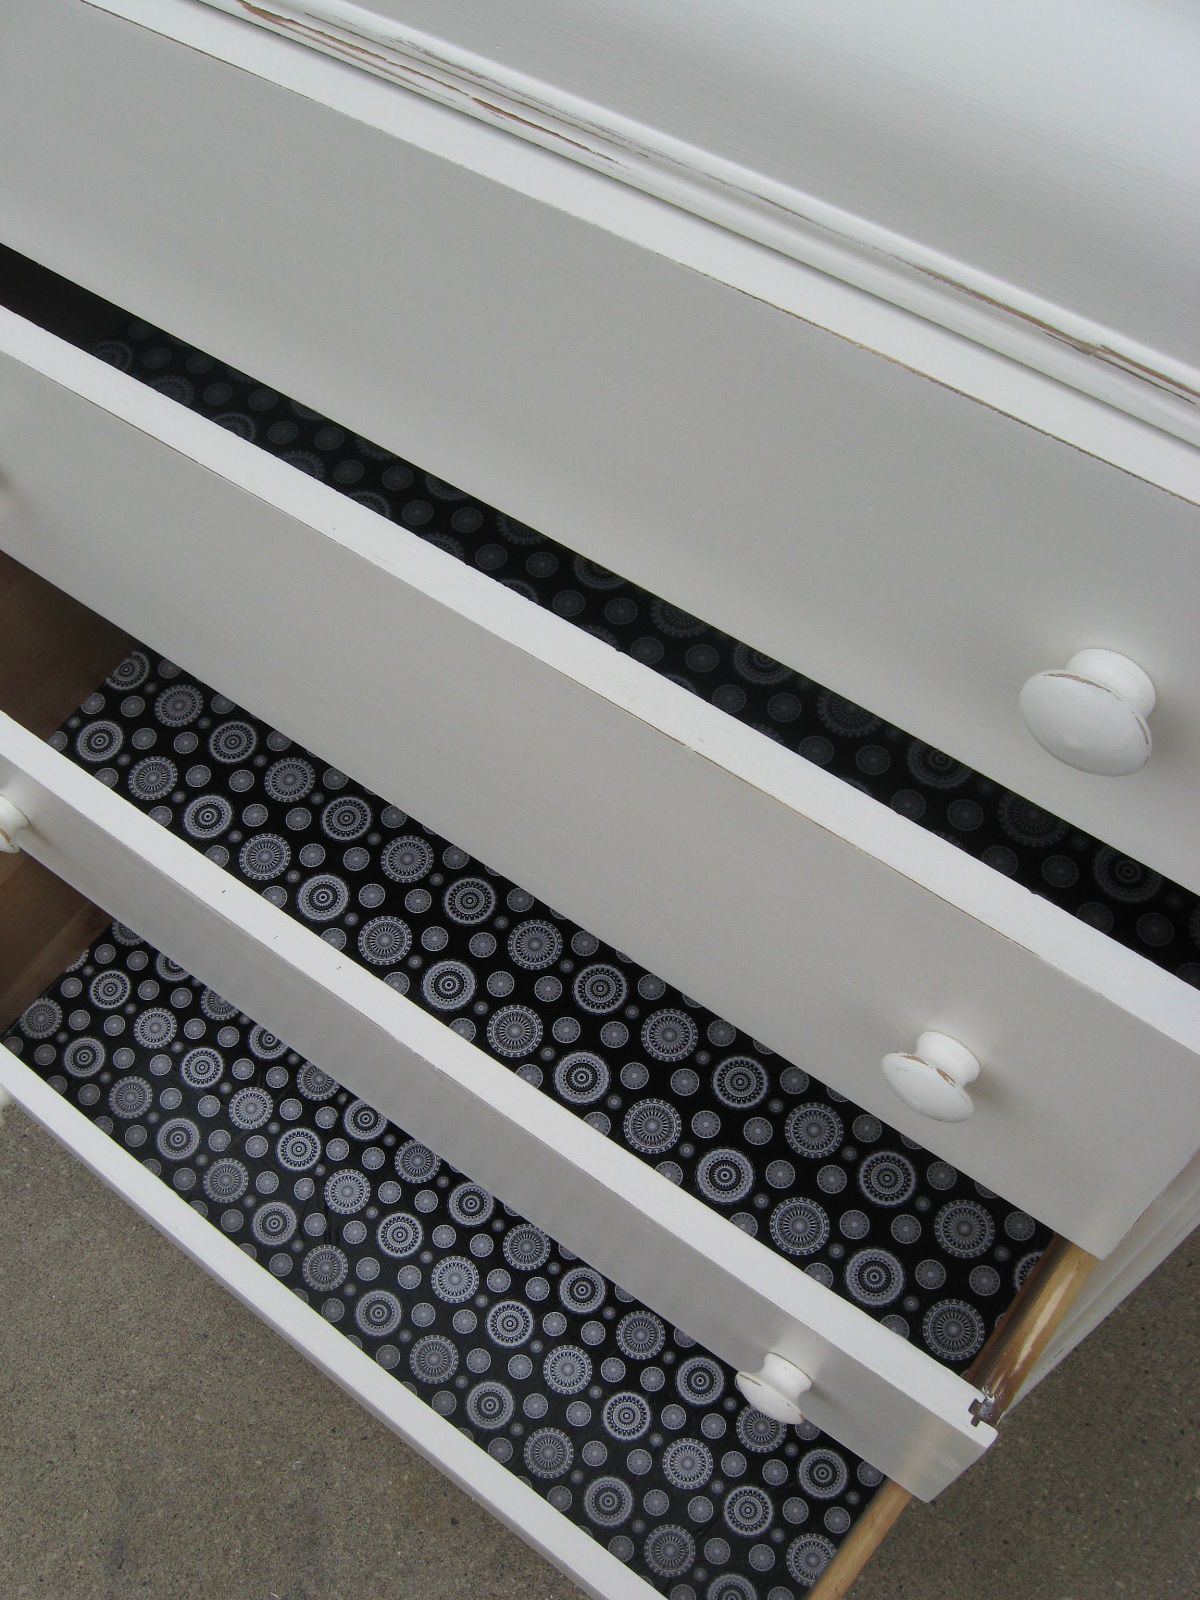 wallpaper in drawers instead of expensive shelf liner. Get